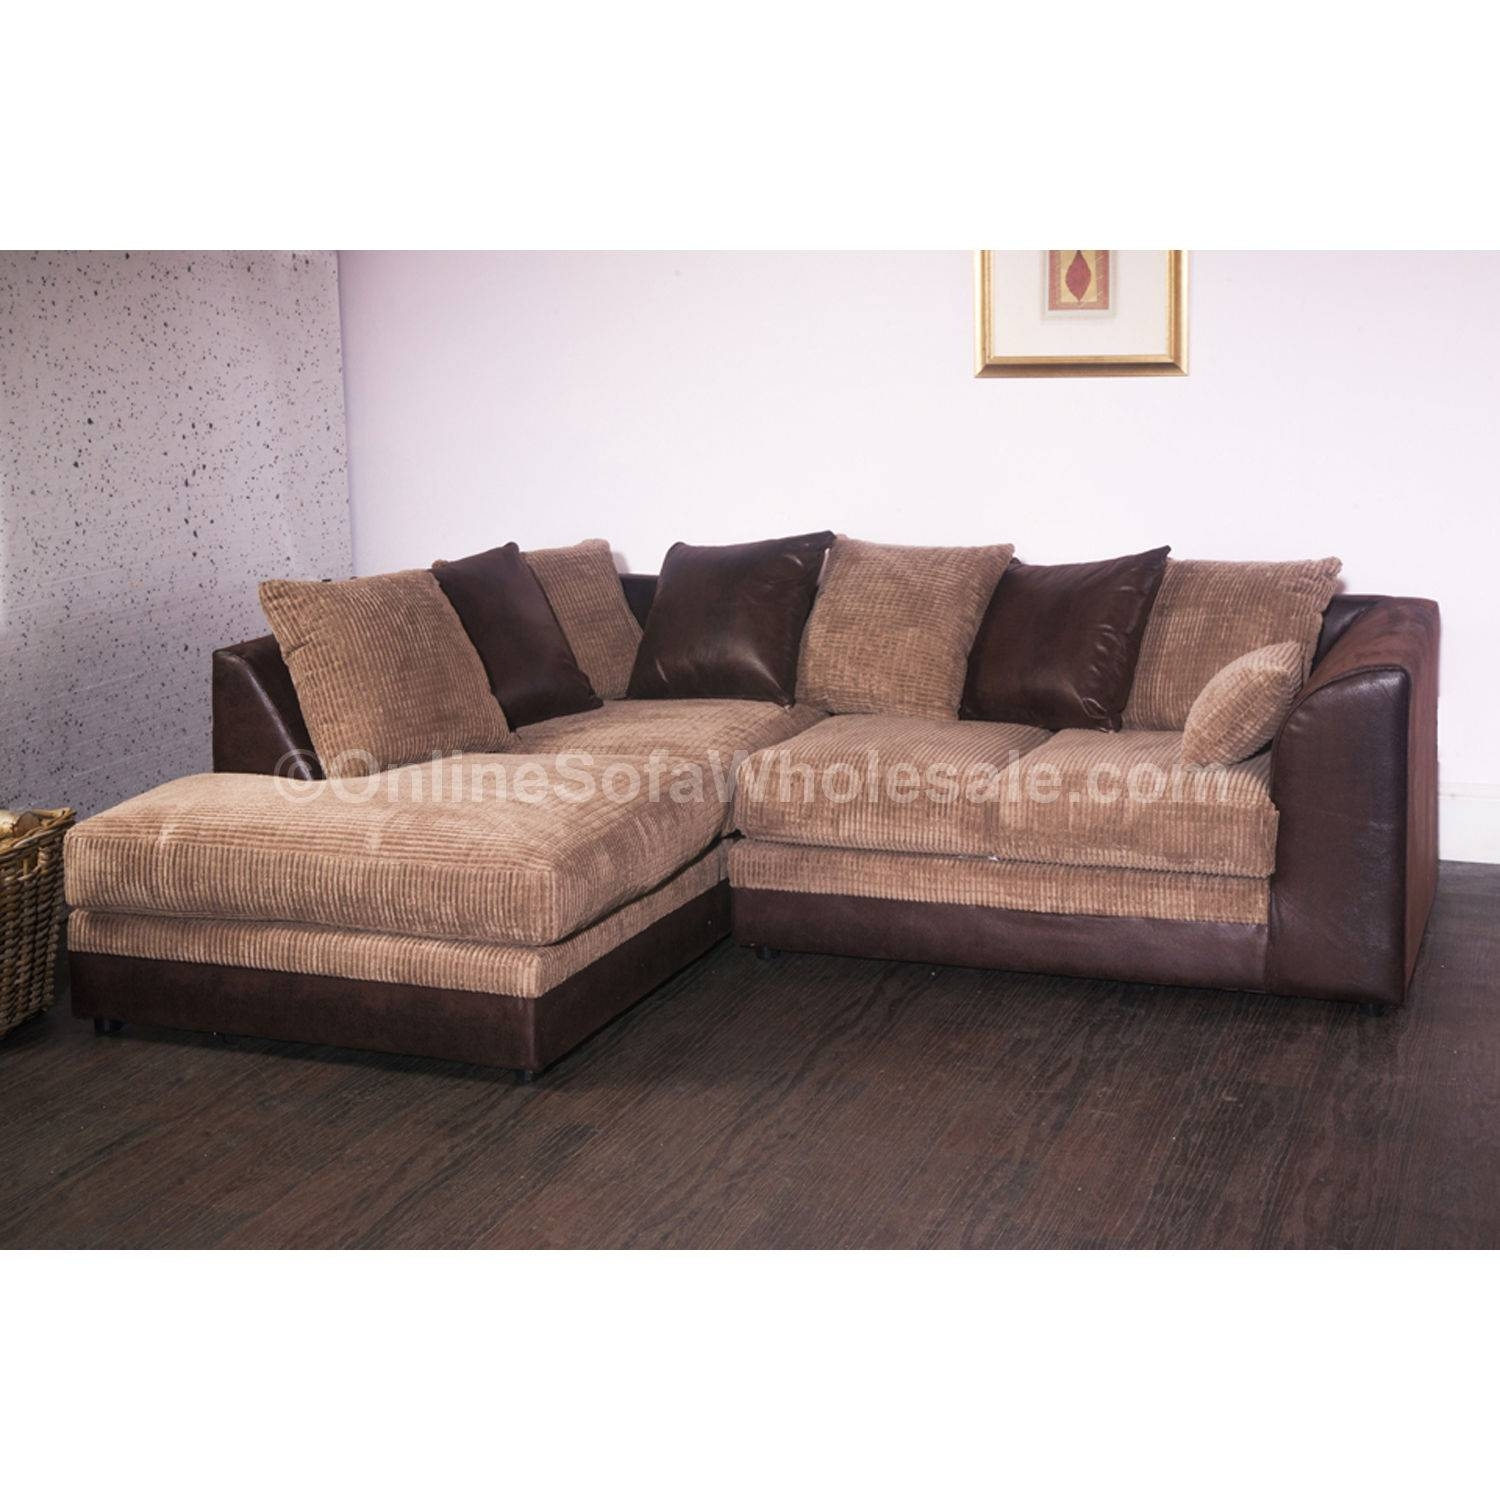 Fabric Corner Sofas Cheap - Simoon - Simoon with regard to Cheap Corner  Sofas (Image